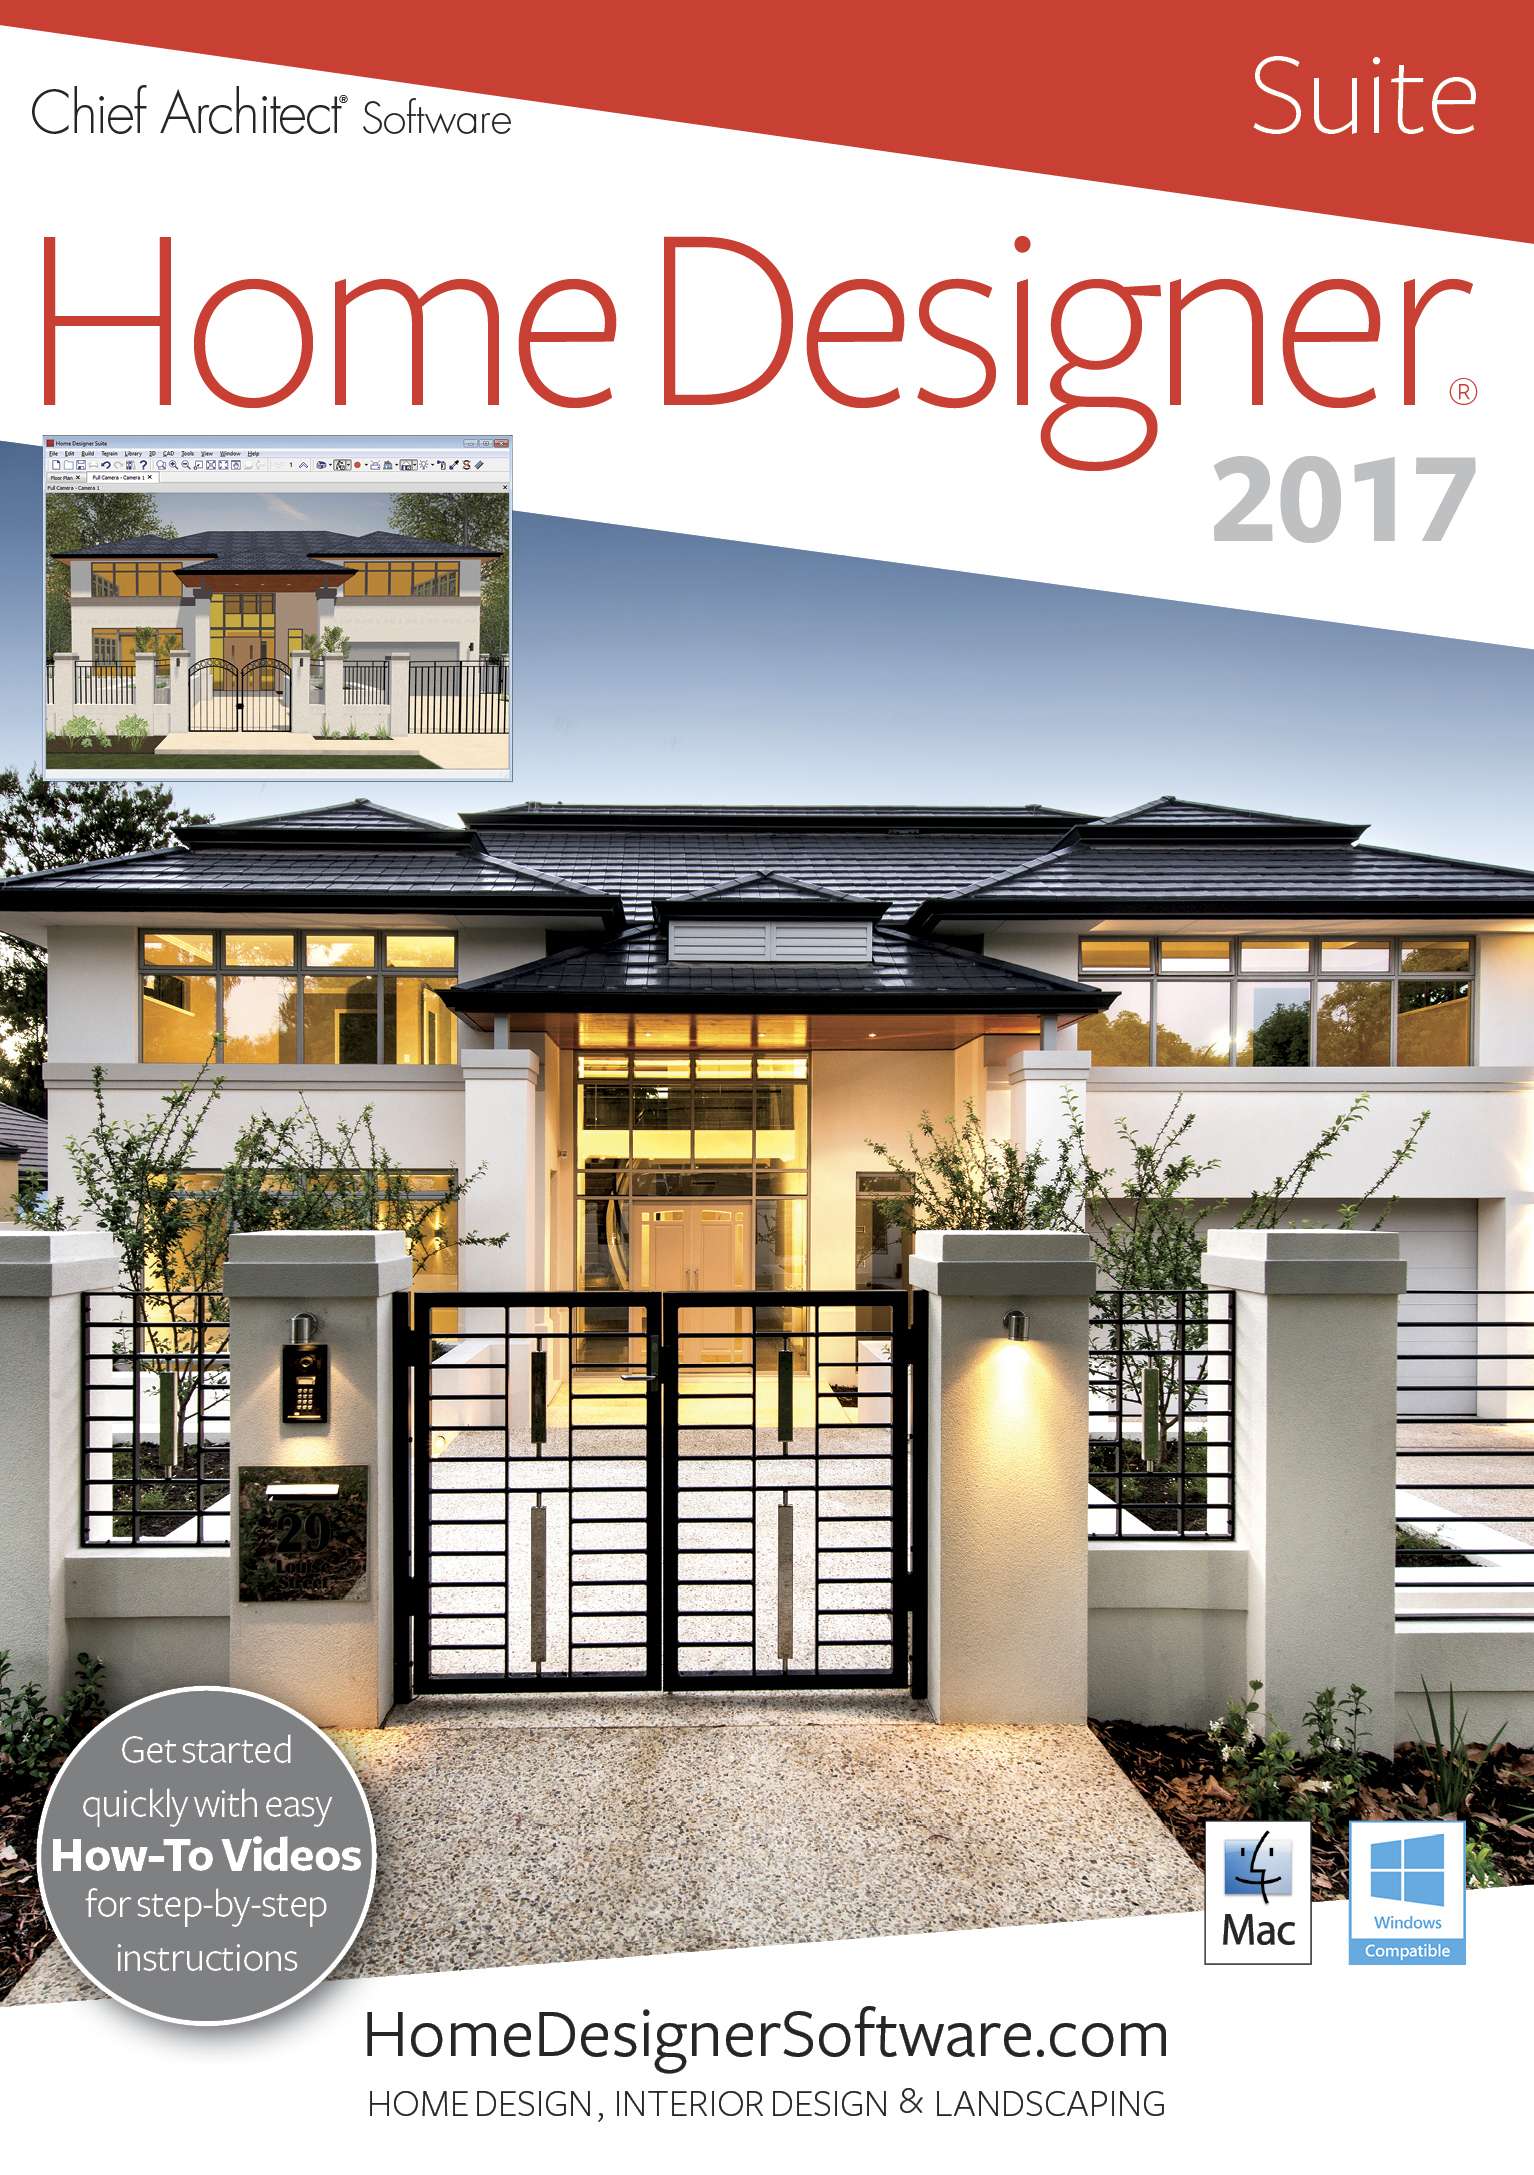 amazon com home designer suite 2017 pc download software